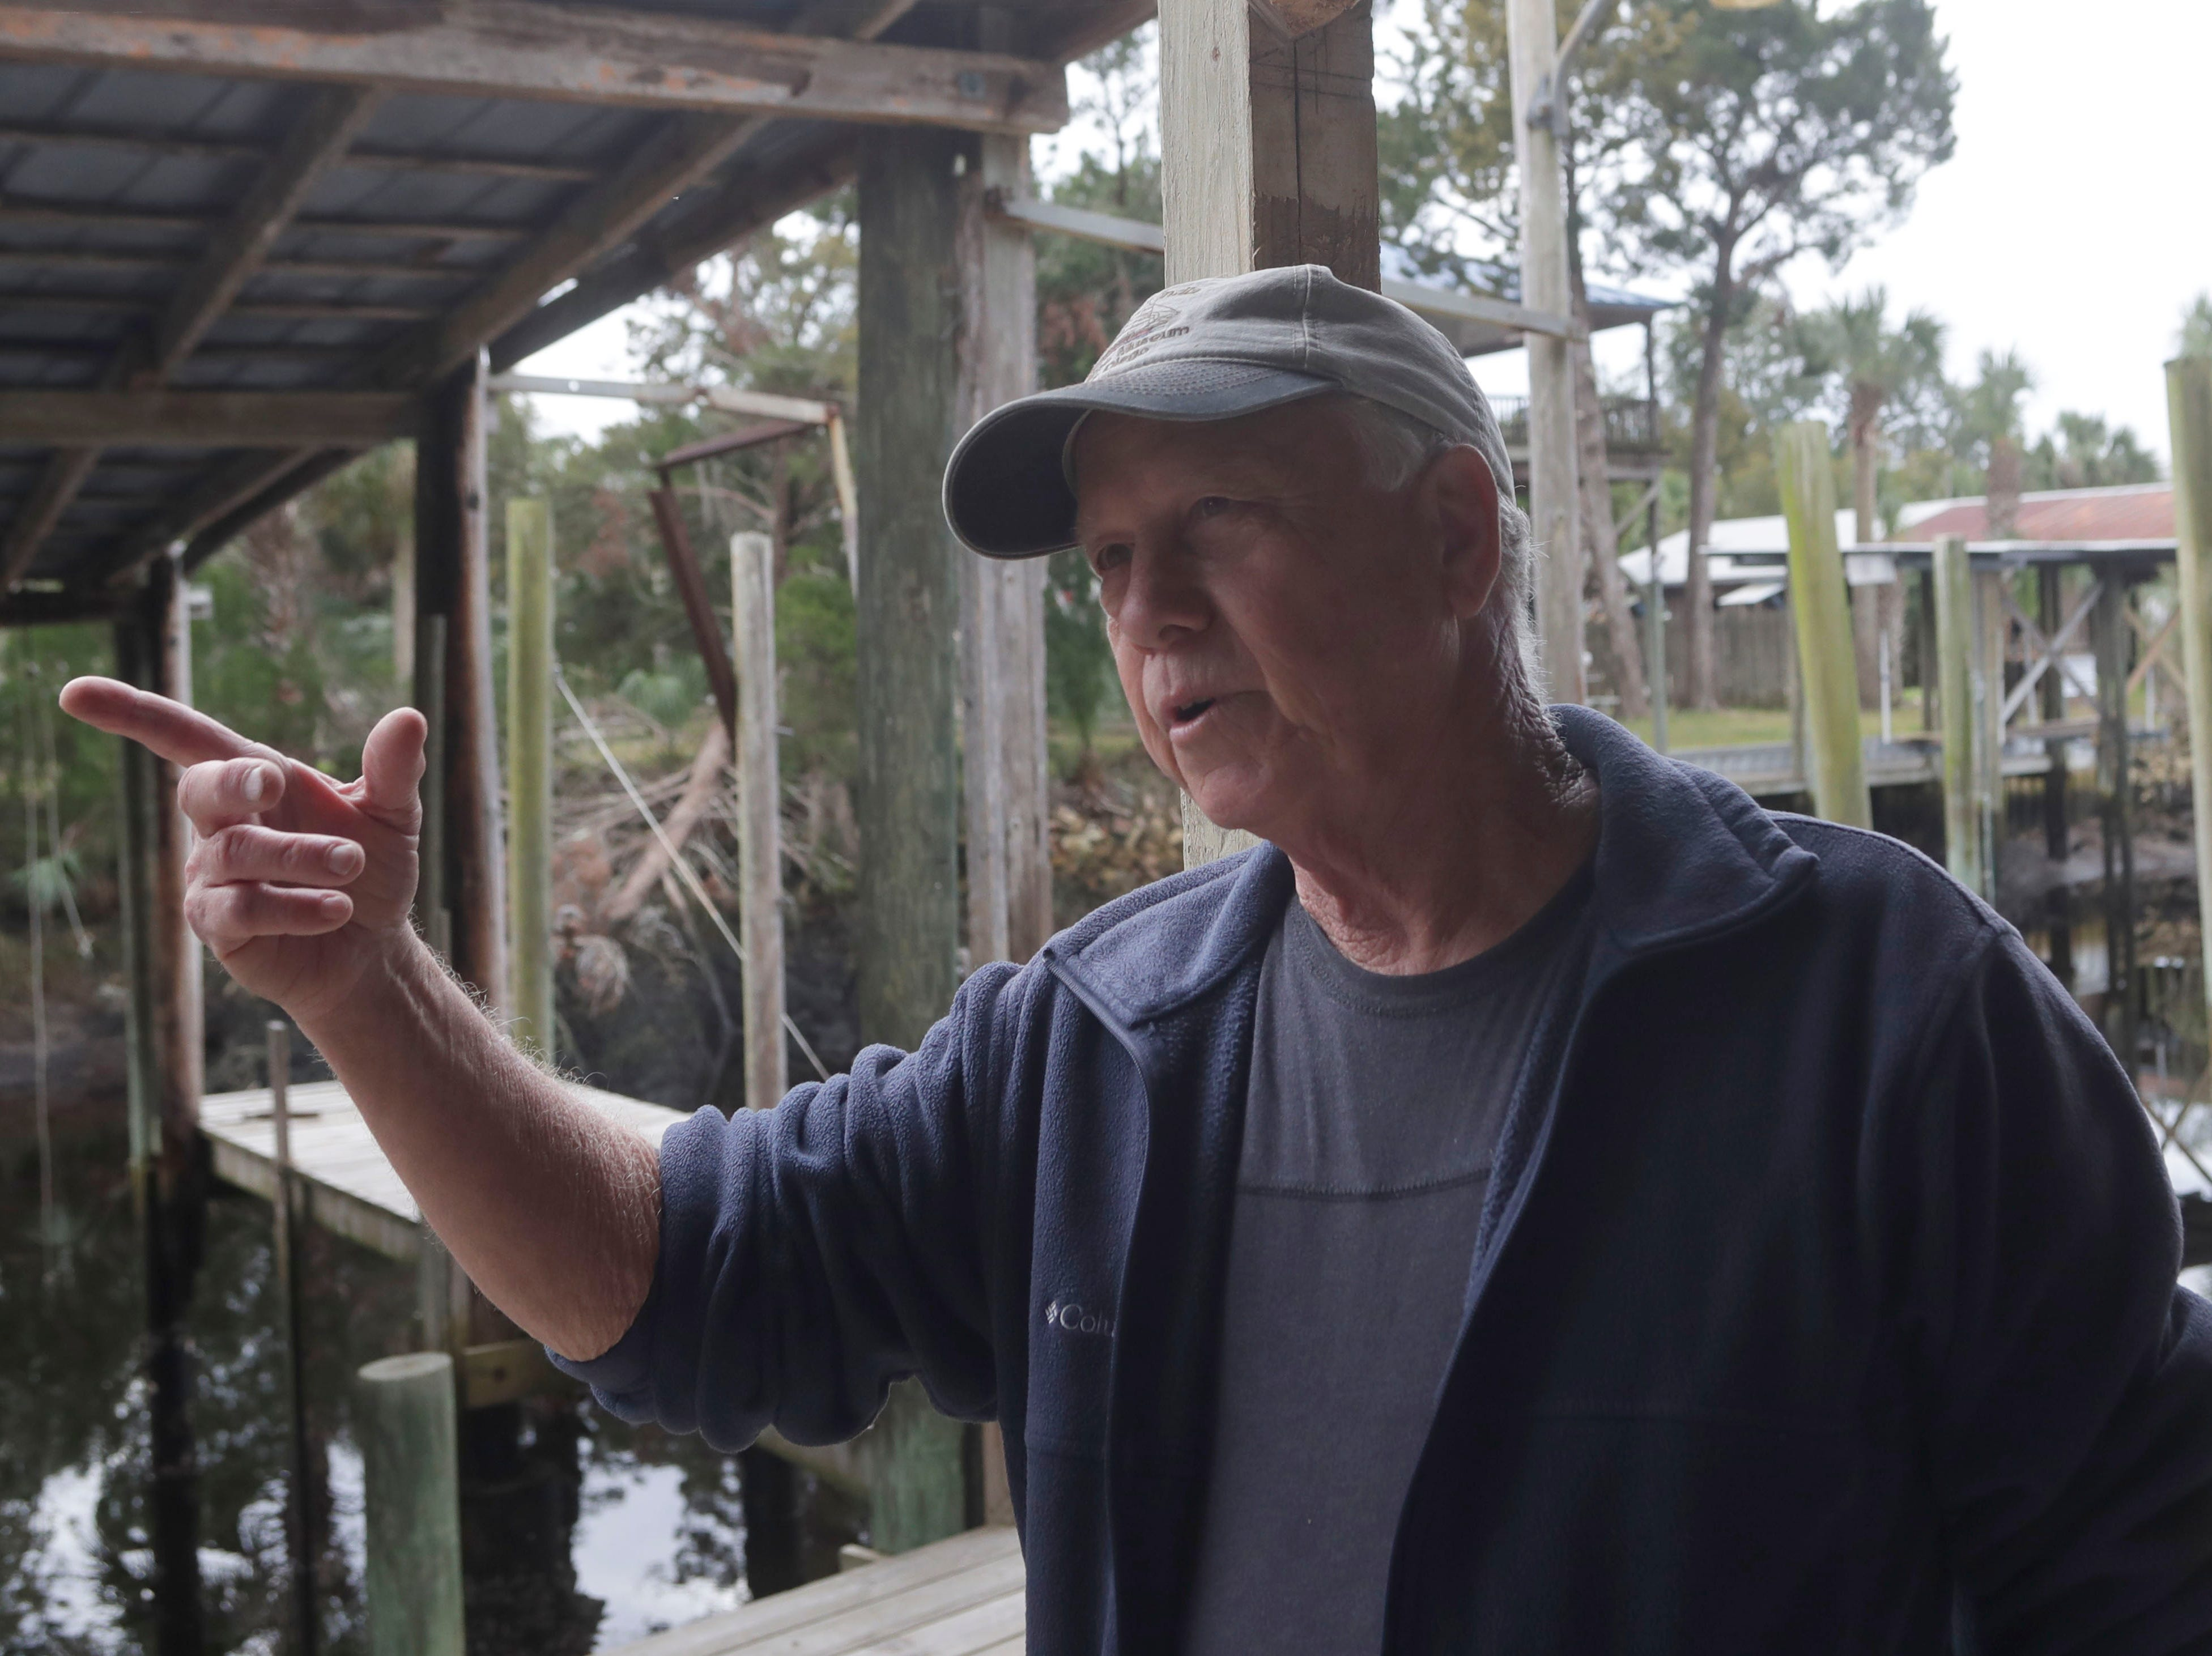 Leo Lovell, owner of the Spring Creek Restaurant, describes the damaged the Spring Creek marina was faced with after Hurricane Michael hit in Oct. 2018.